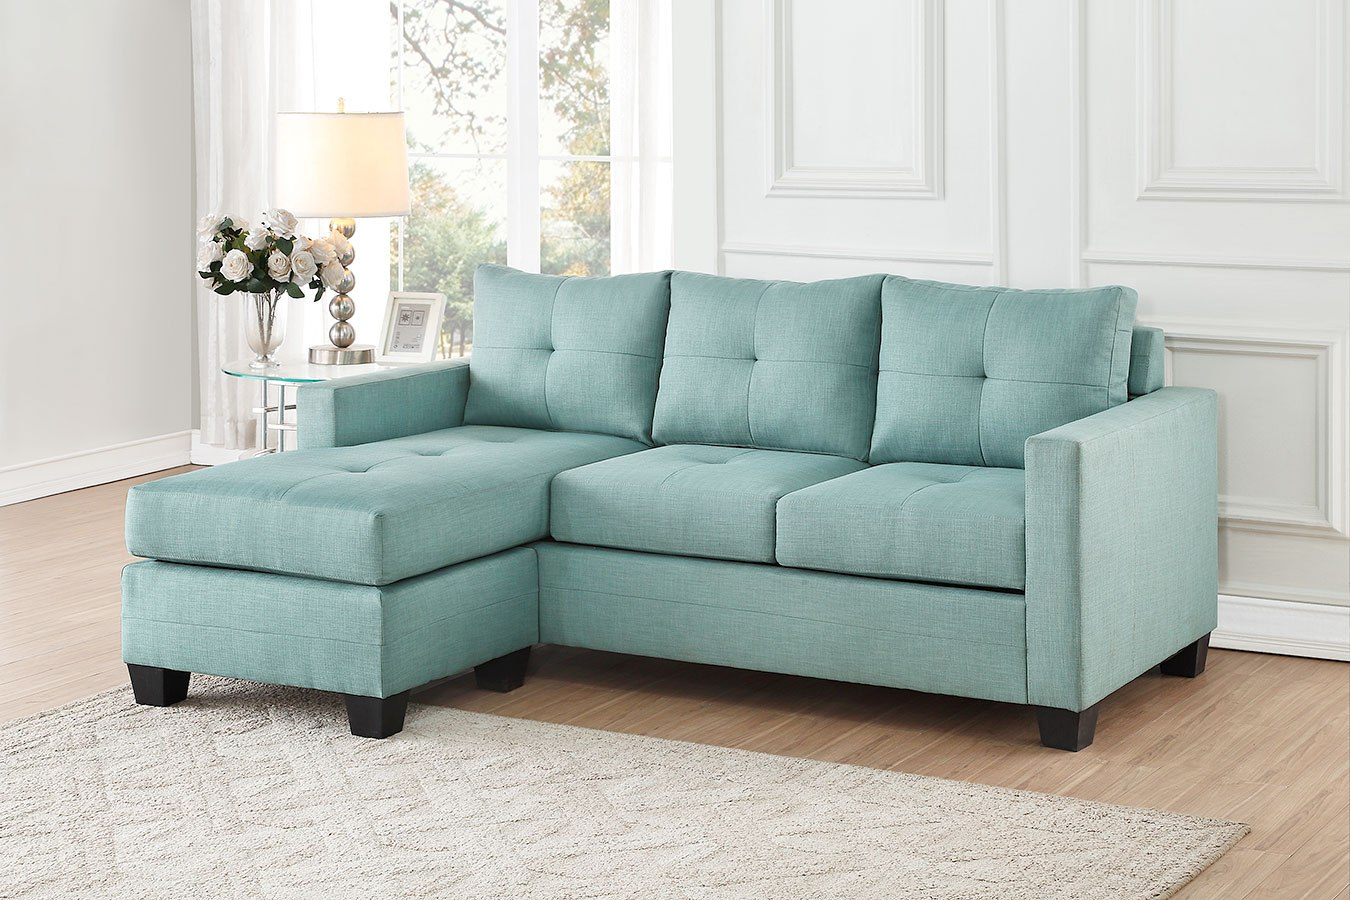 Phelps Sofa Chaise Set Teal By Homelegance Furniturepick